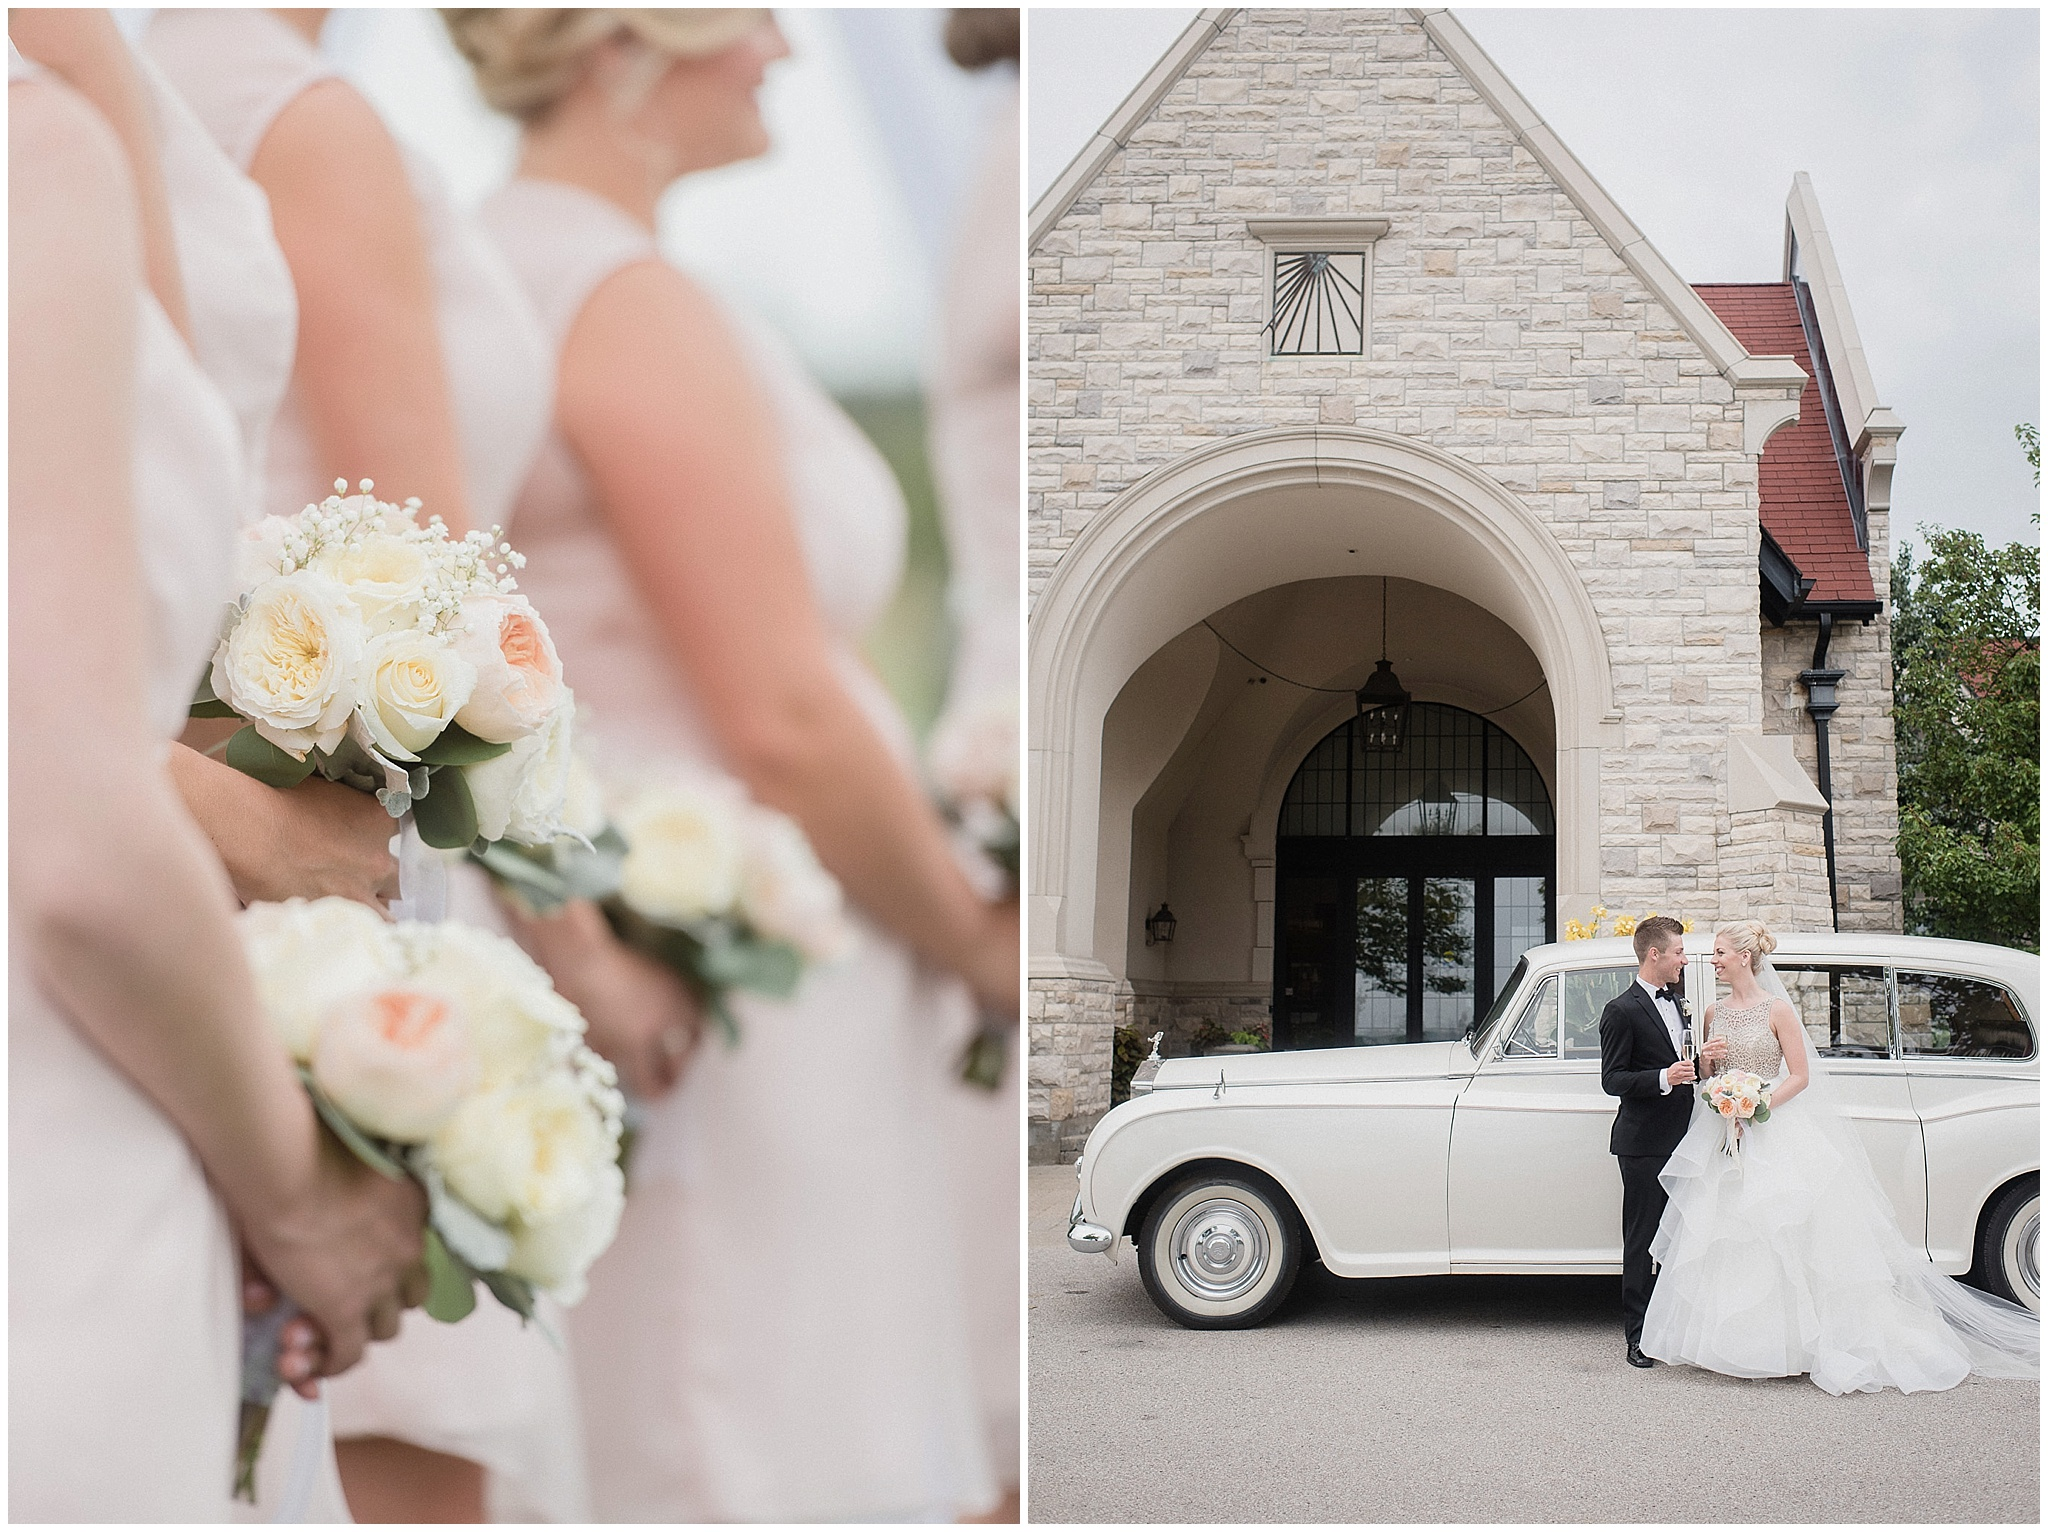 Glencairn wedding photographed by Jenn Kavanagh Photography